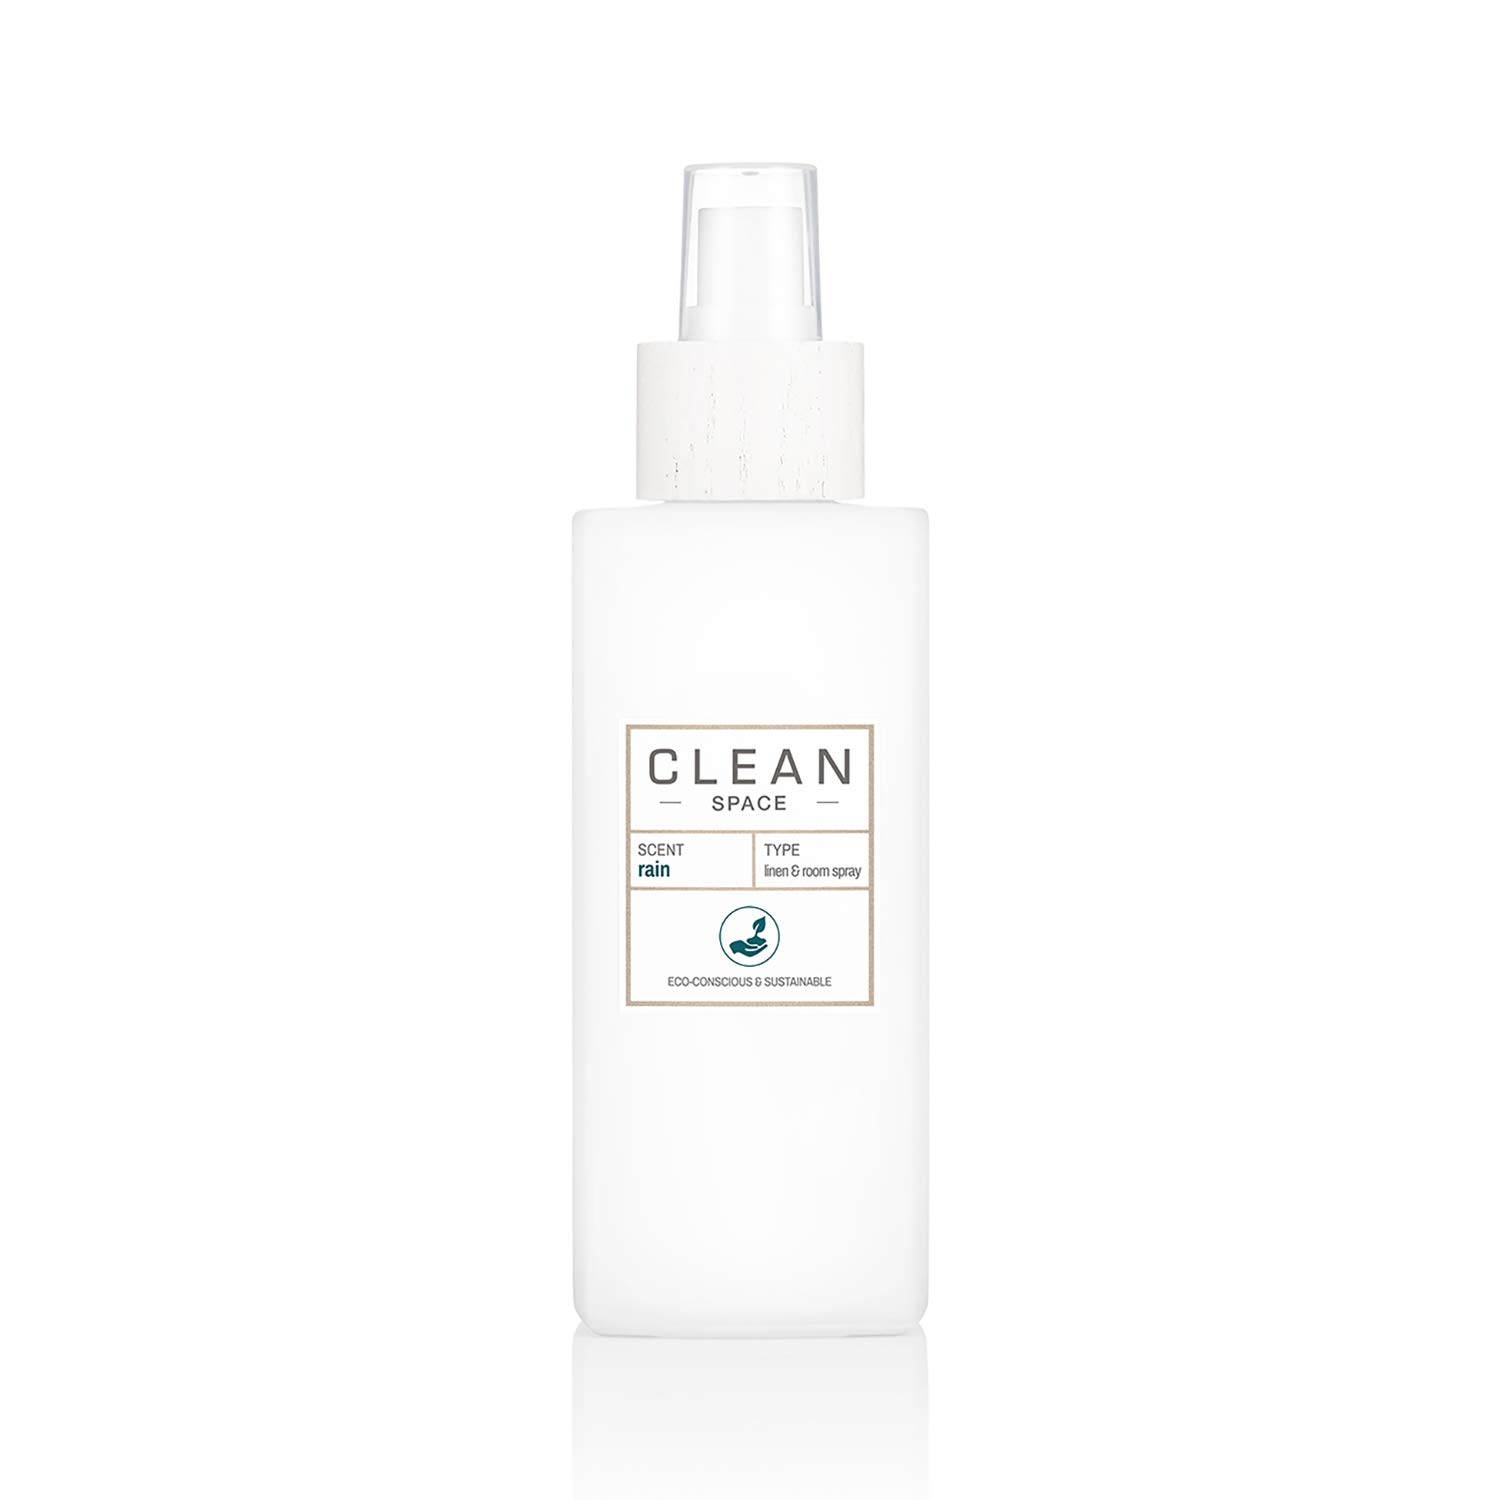 CLEAN SPACE Linen Room Las Vegas Mall Spray Reusable Mist Glass Aromatic free shipping in